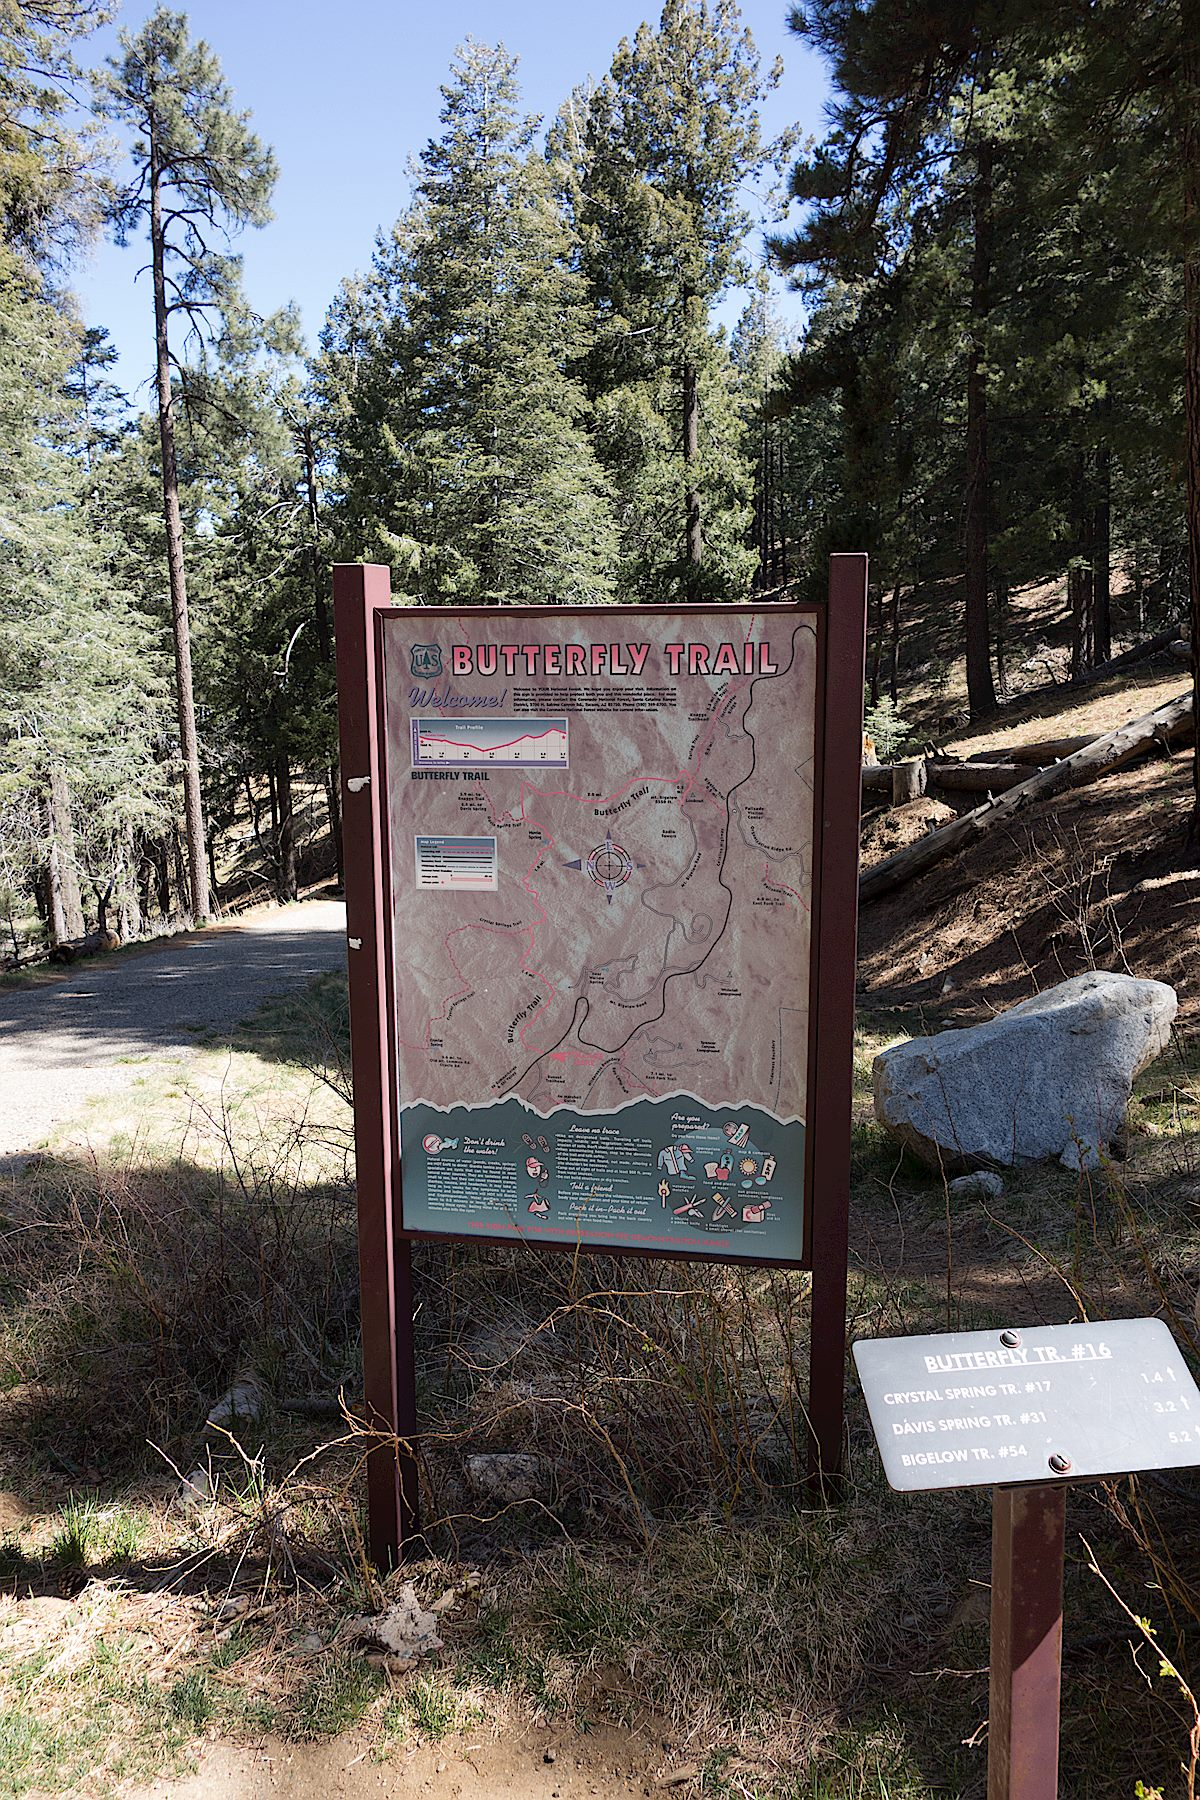 Trail map sign and small trail sign at the Butterfly Trailhead. April 2014.